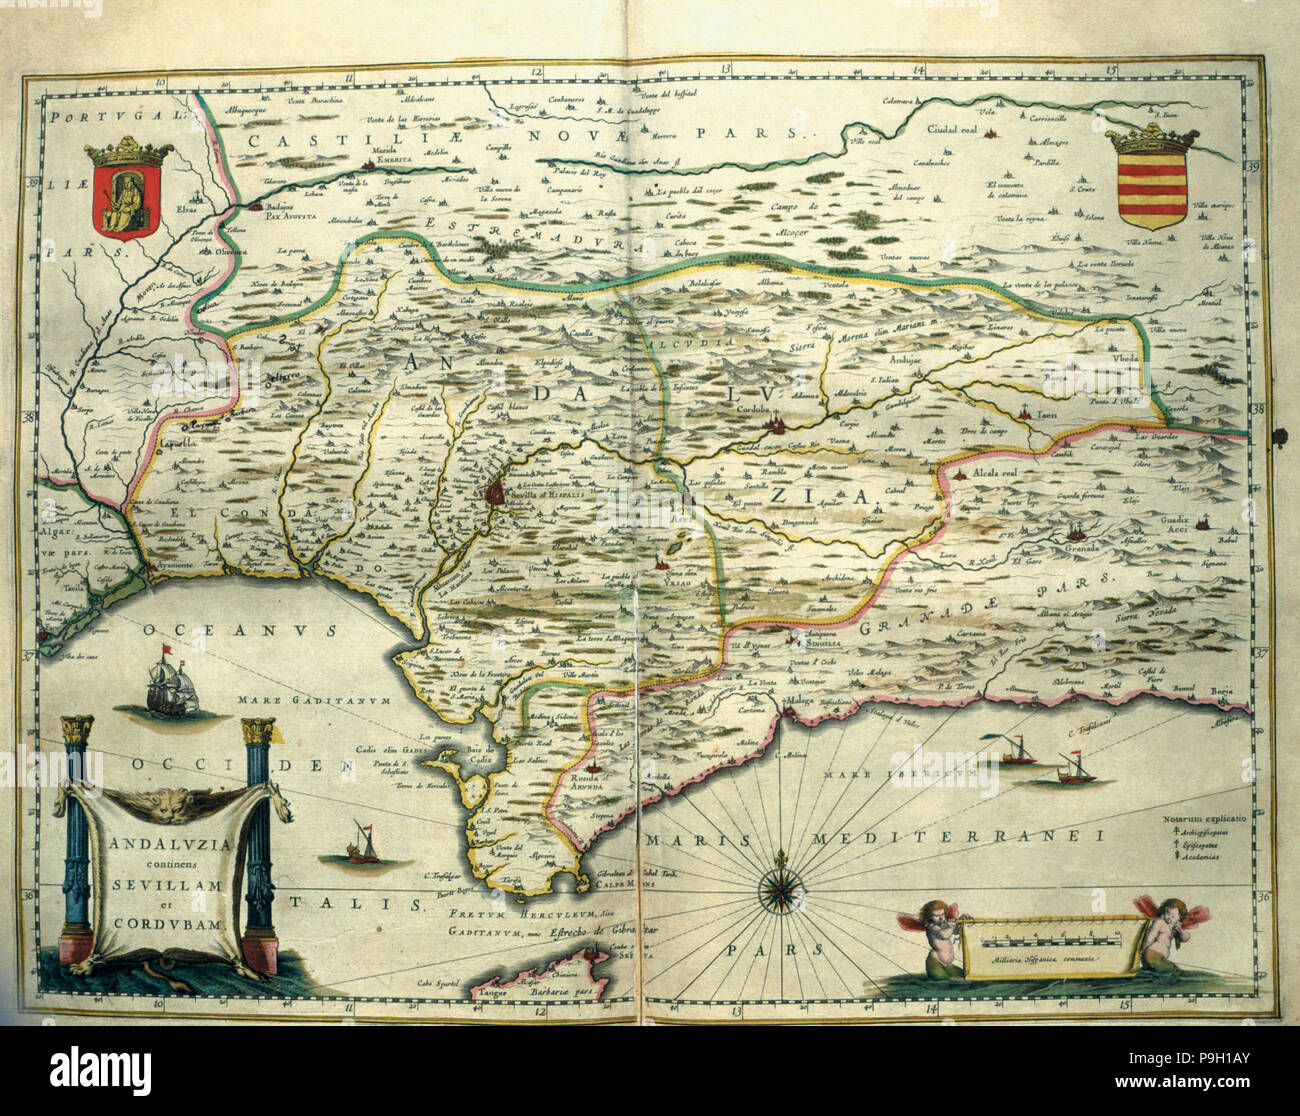 Andalusia, colored engraving from the book 'Le Theatre du monde' or 'Nouvel Atlas', 1645, created… Stock Photo